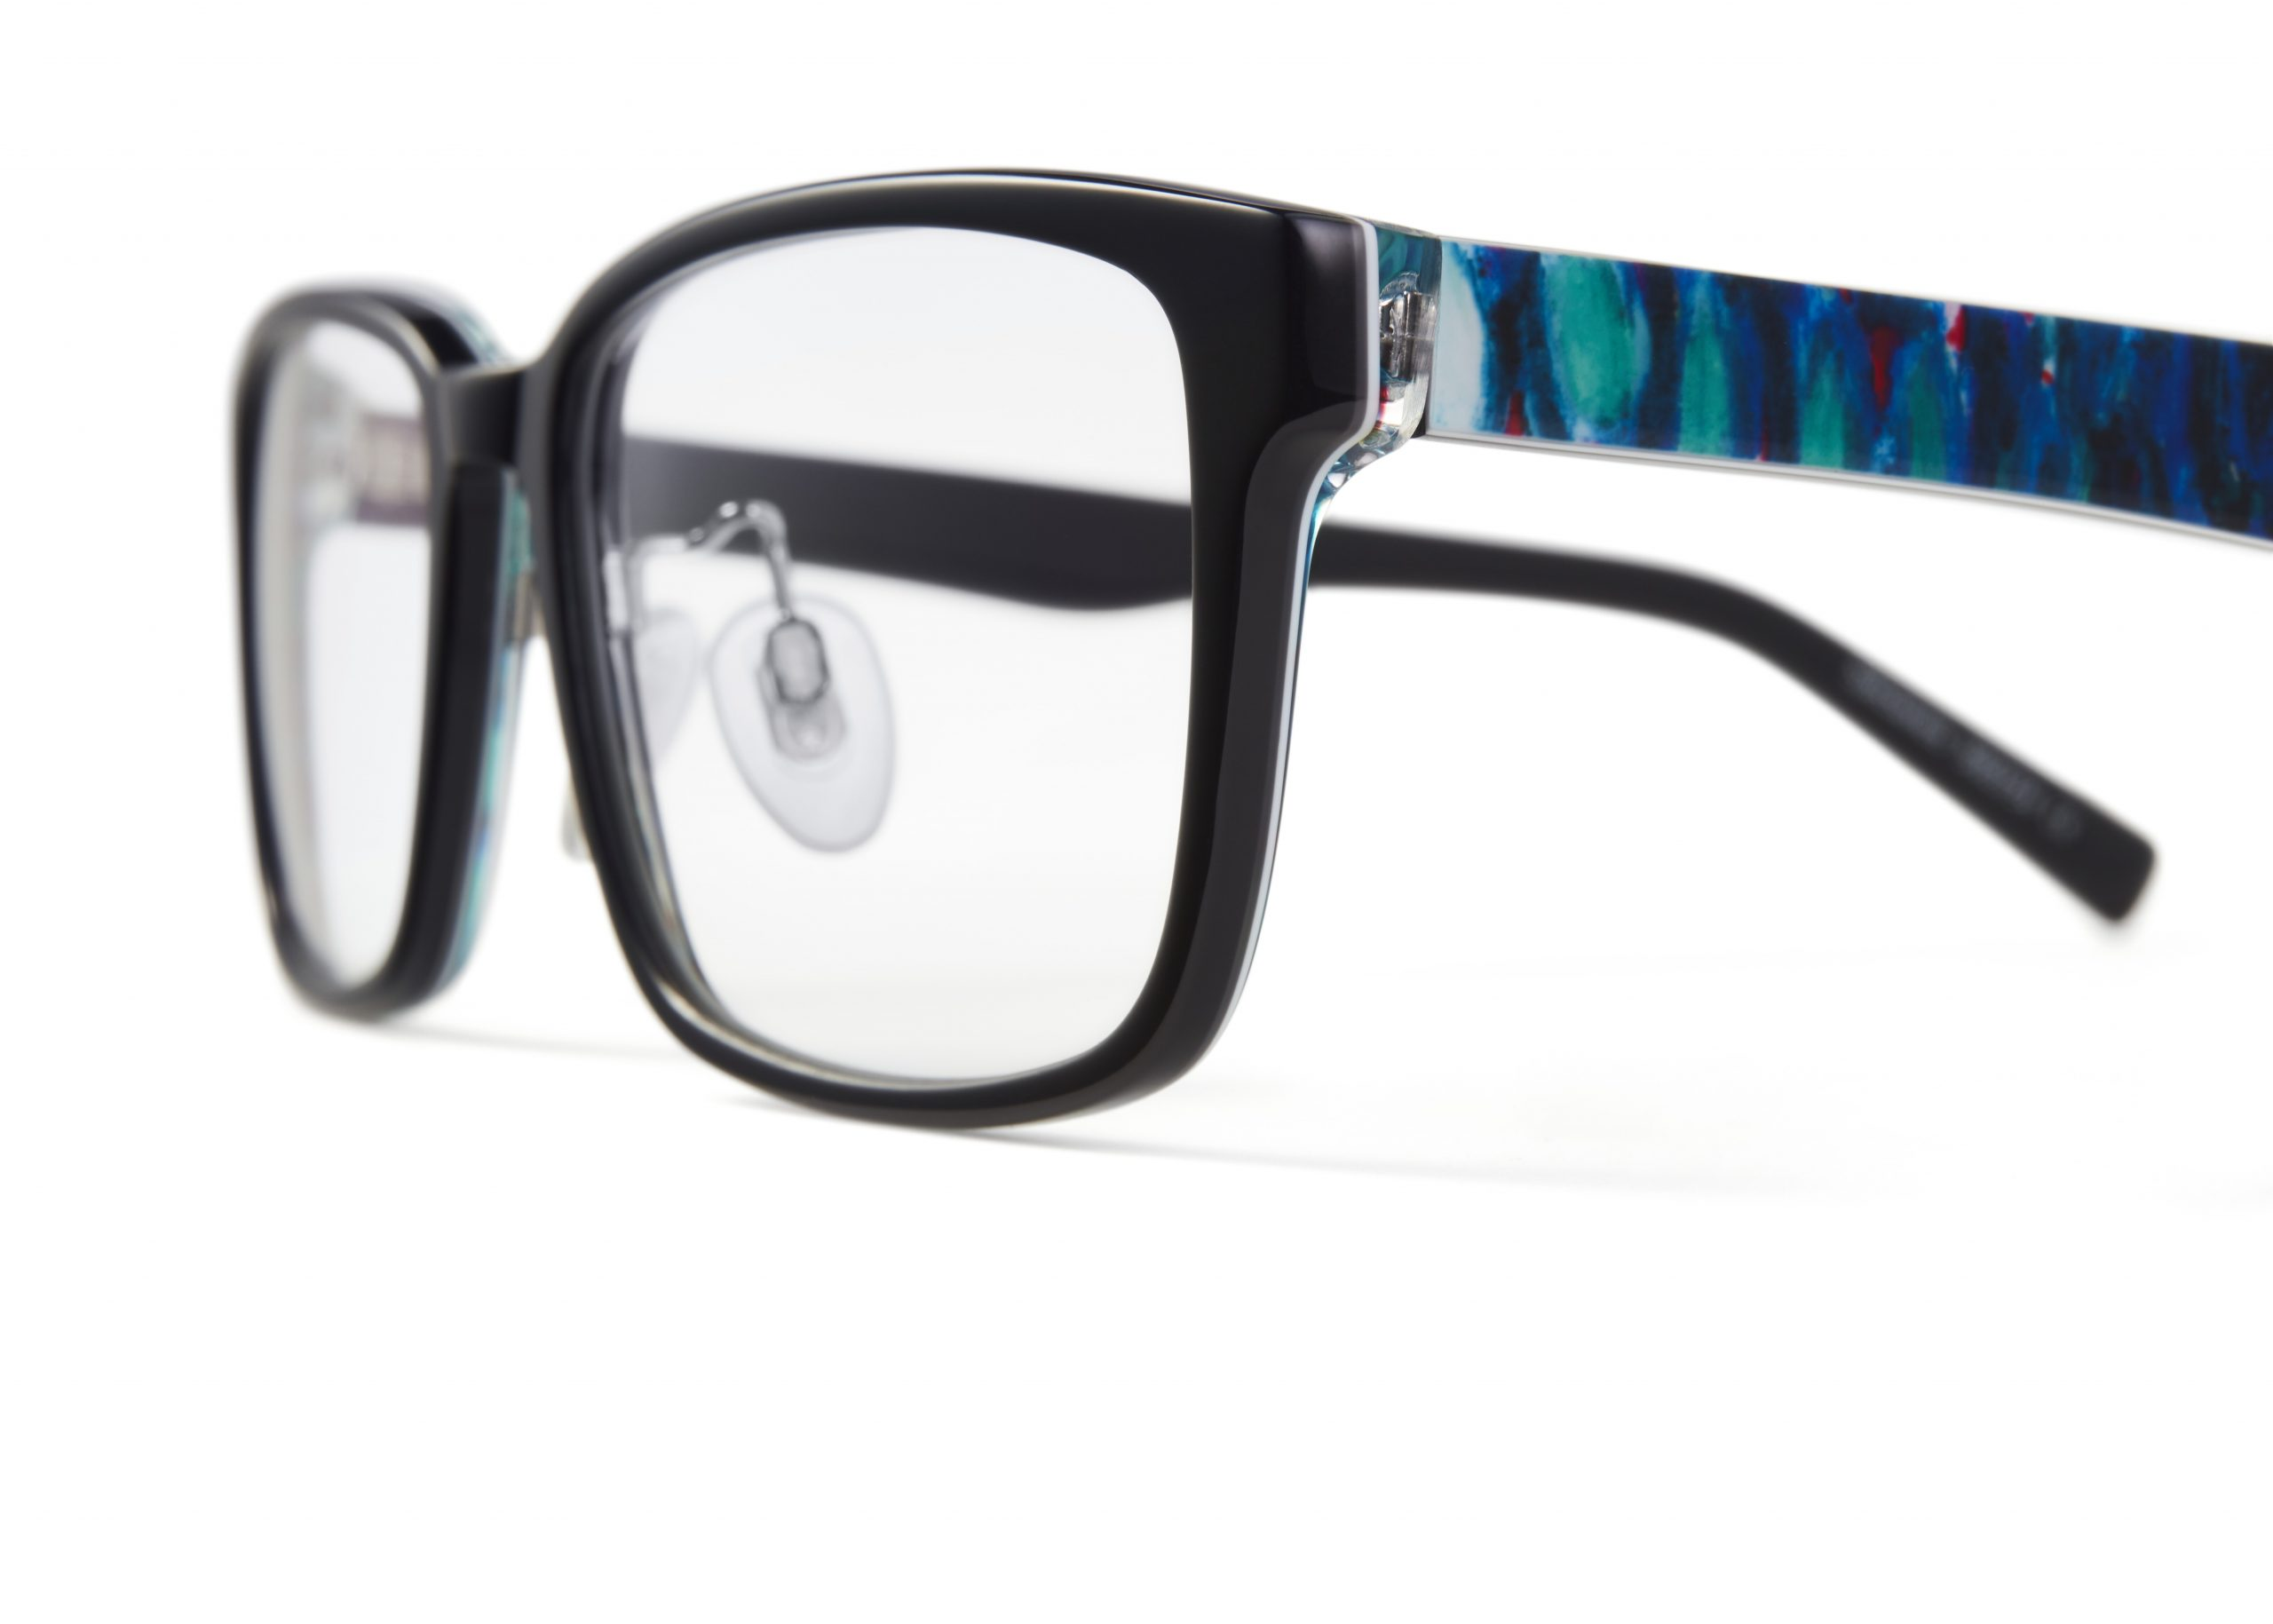 FH 06 30831223 - 2 pairs single vision �169 www.specsavers.co.nz